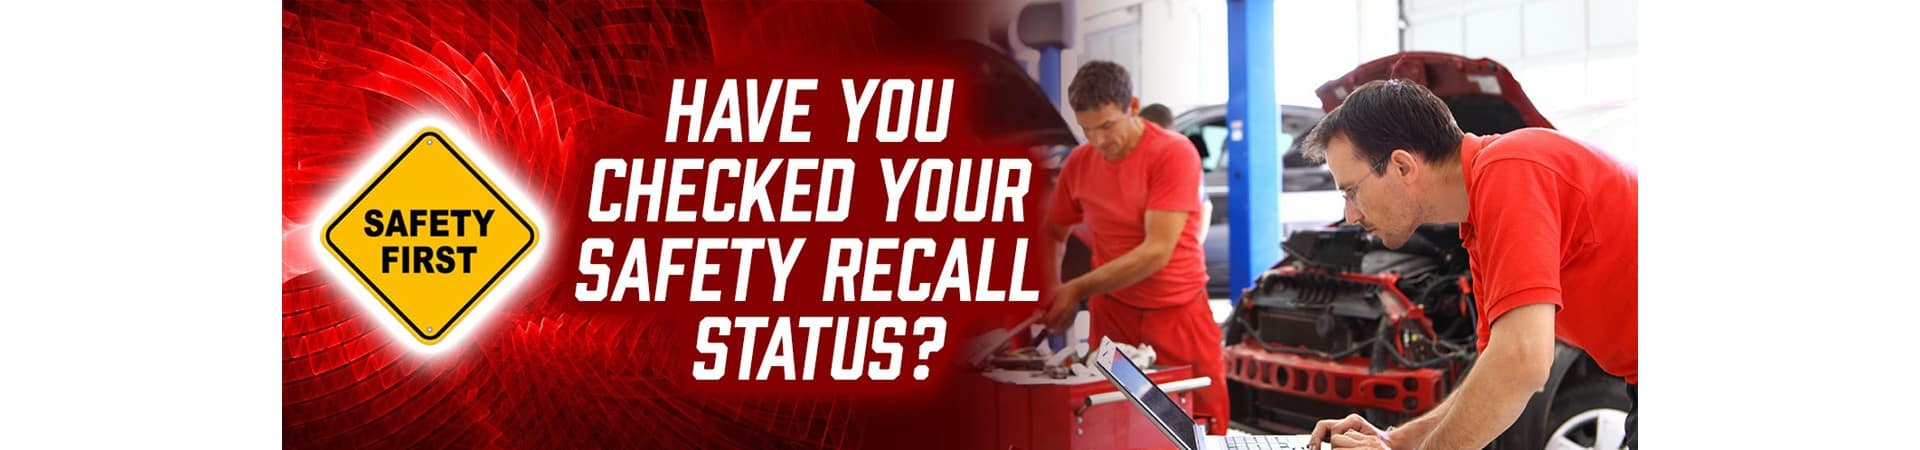 Honda Safety Recall Check